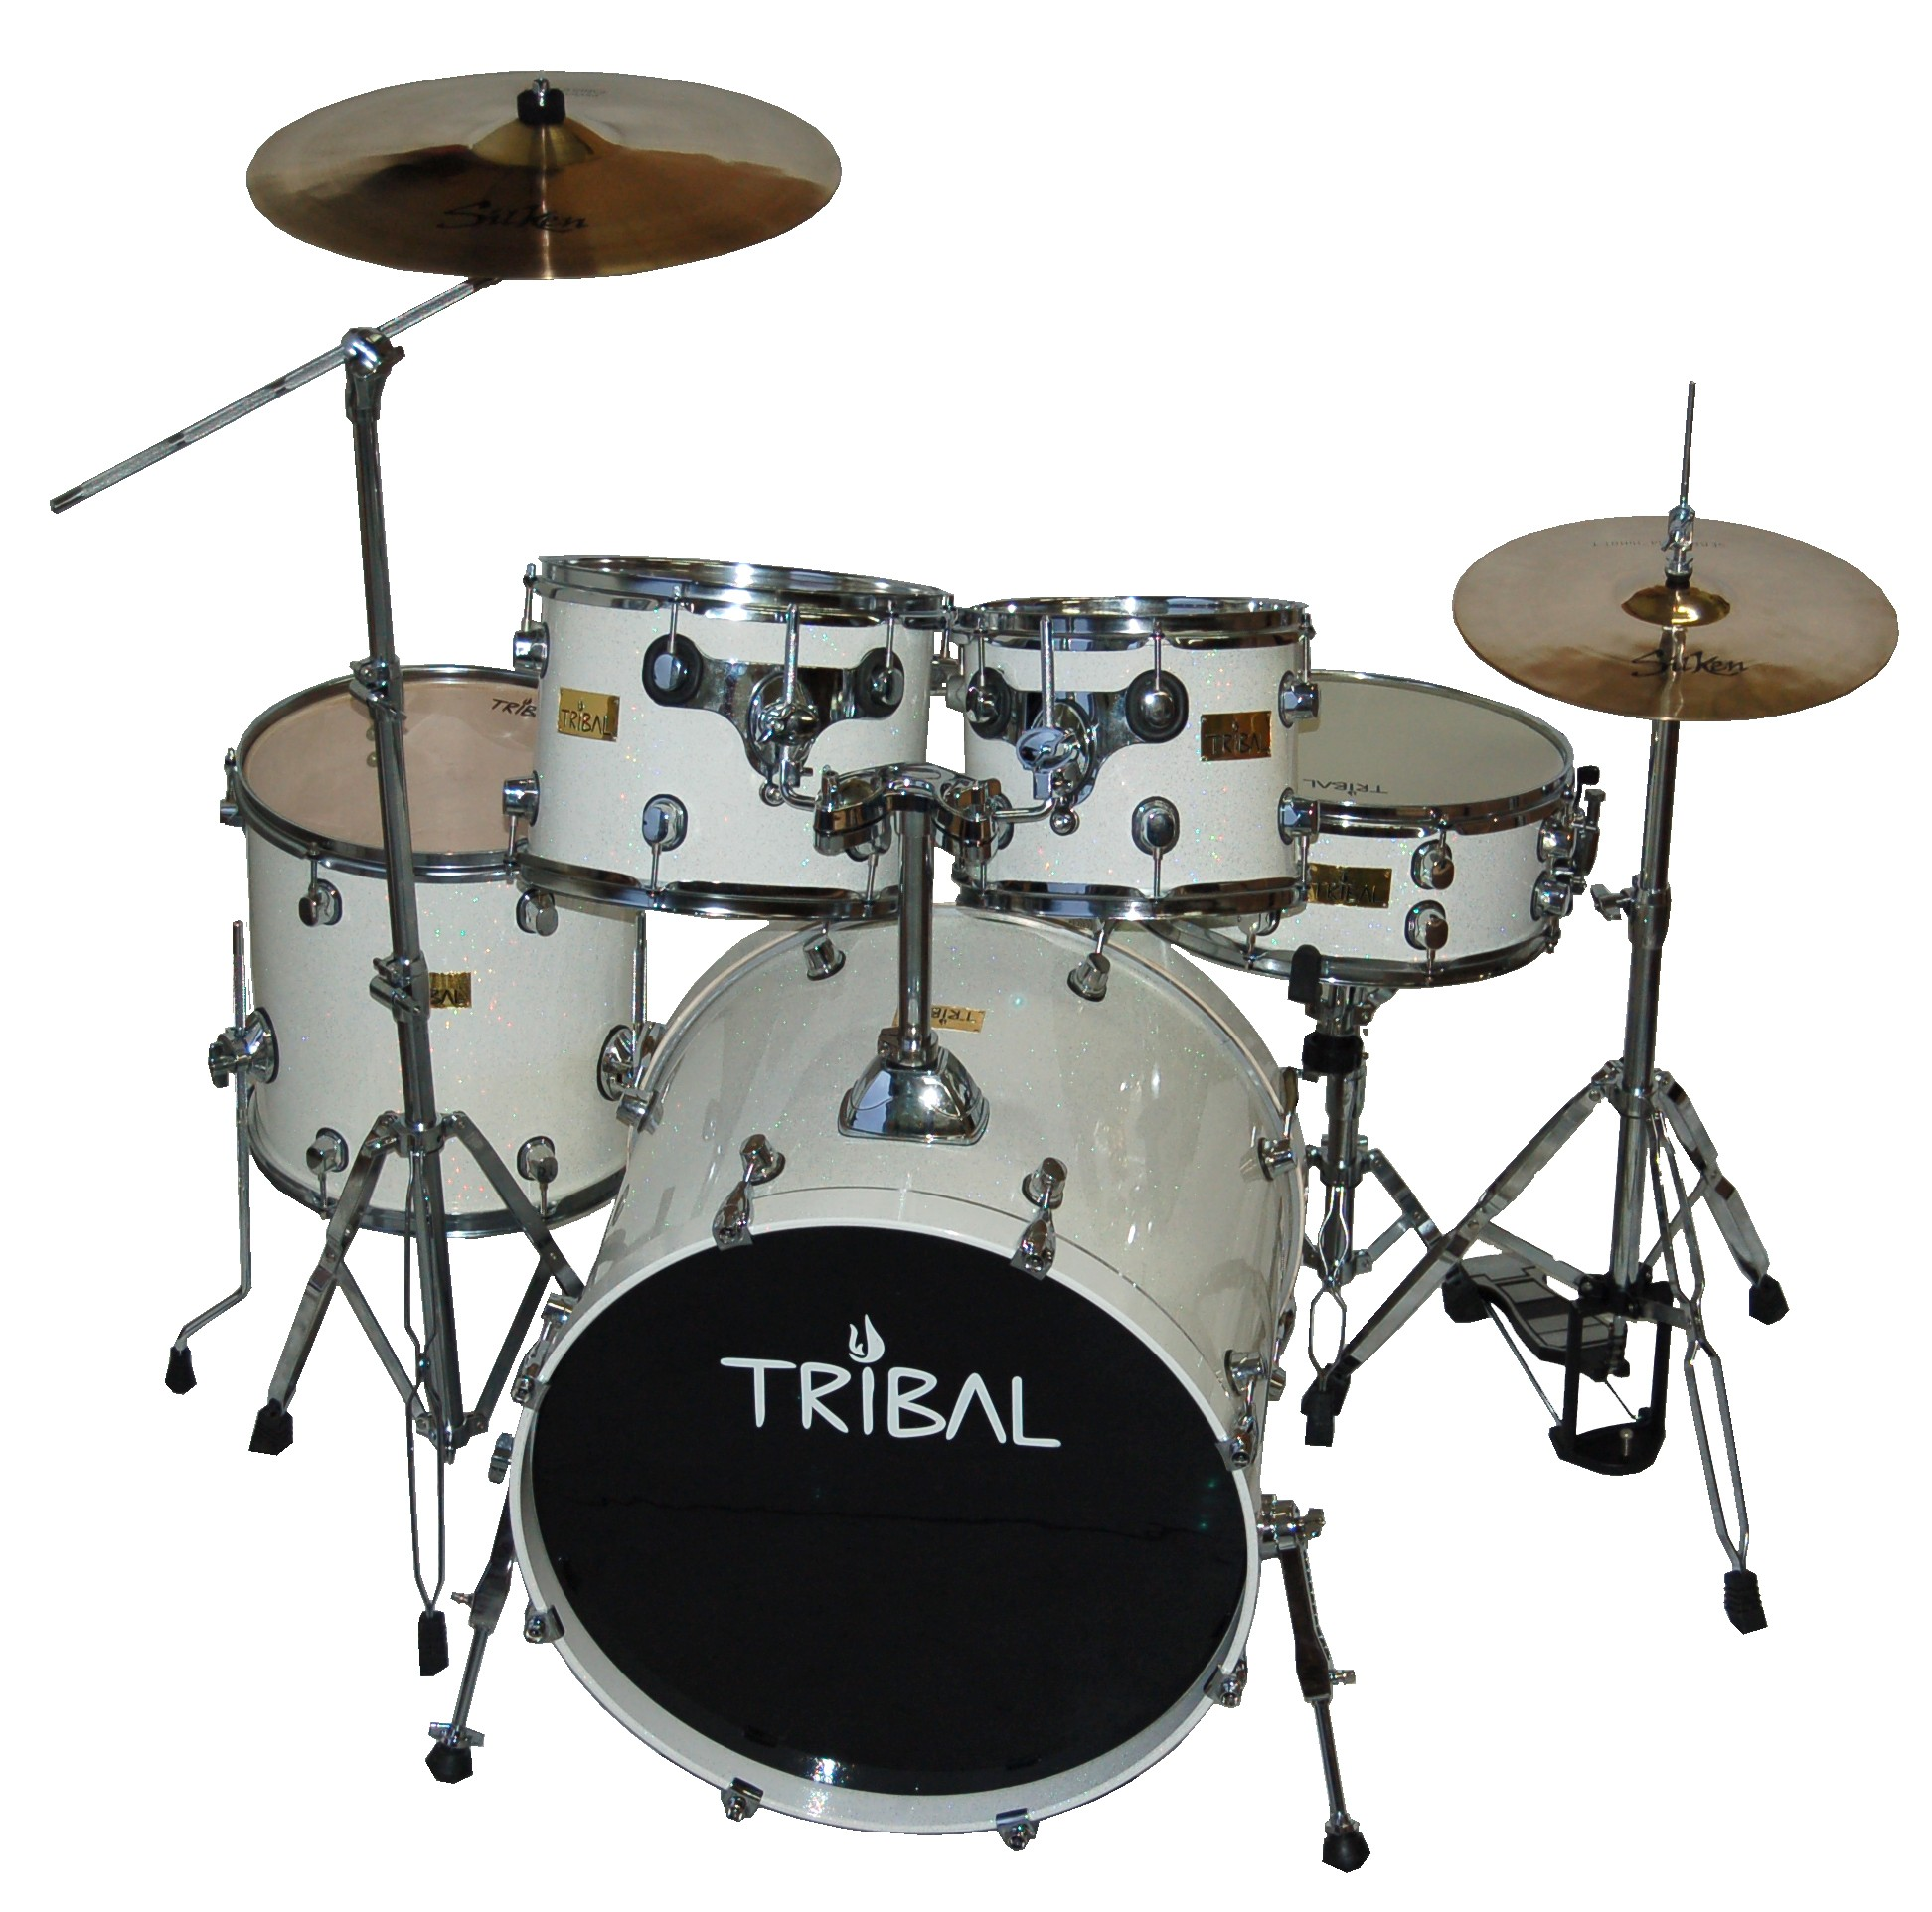 TRIBAL LANCE 805 SERIES – SPARKLE WHITE